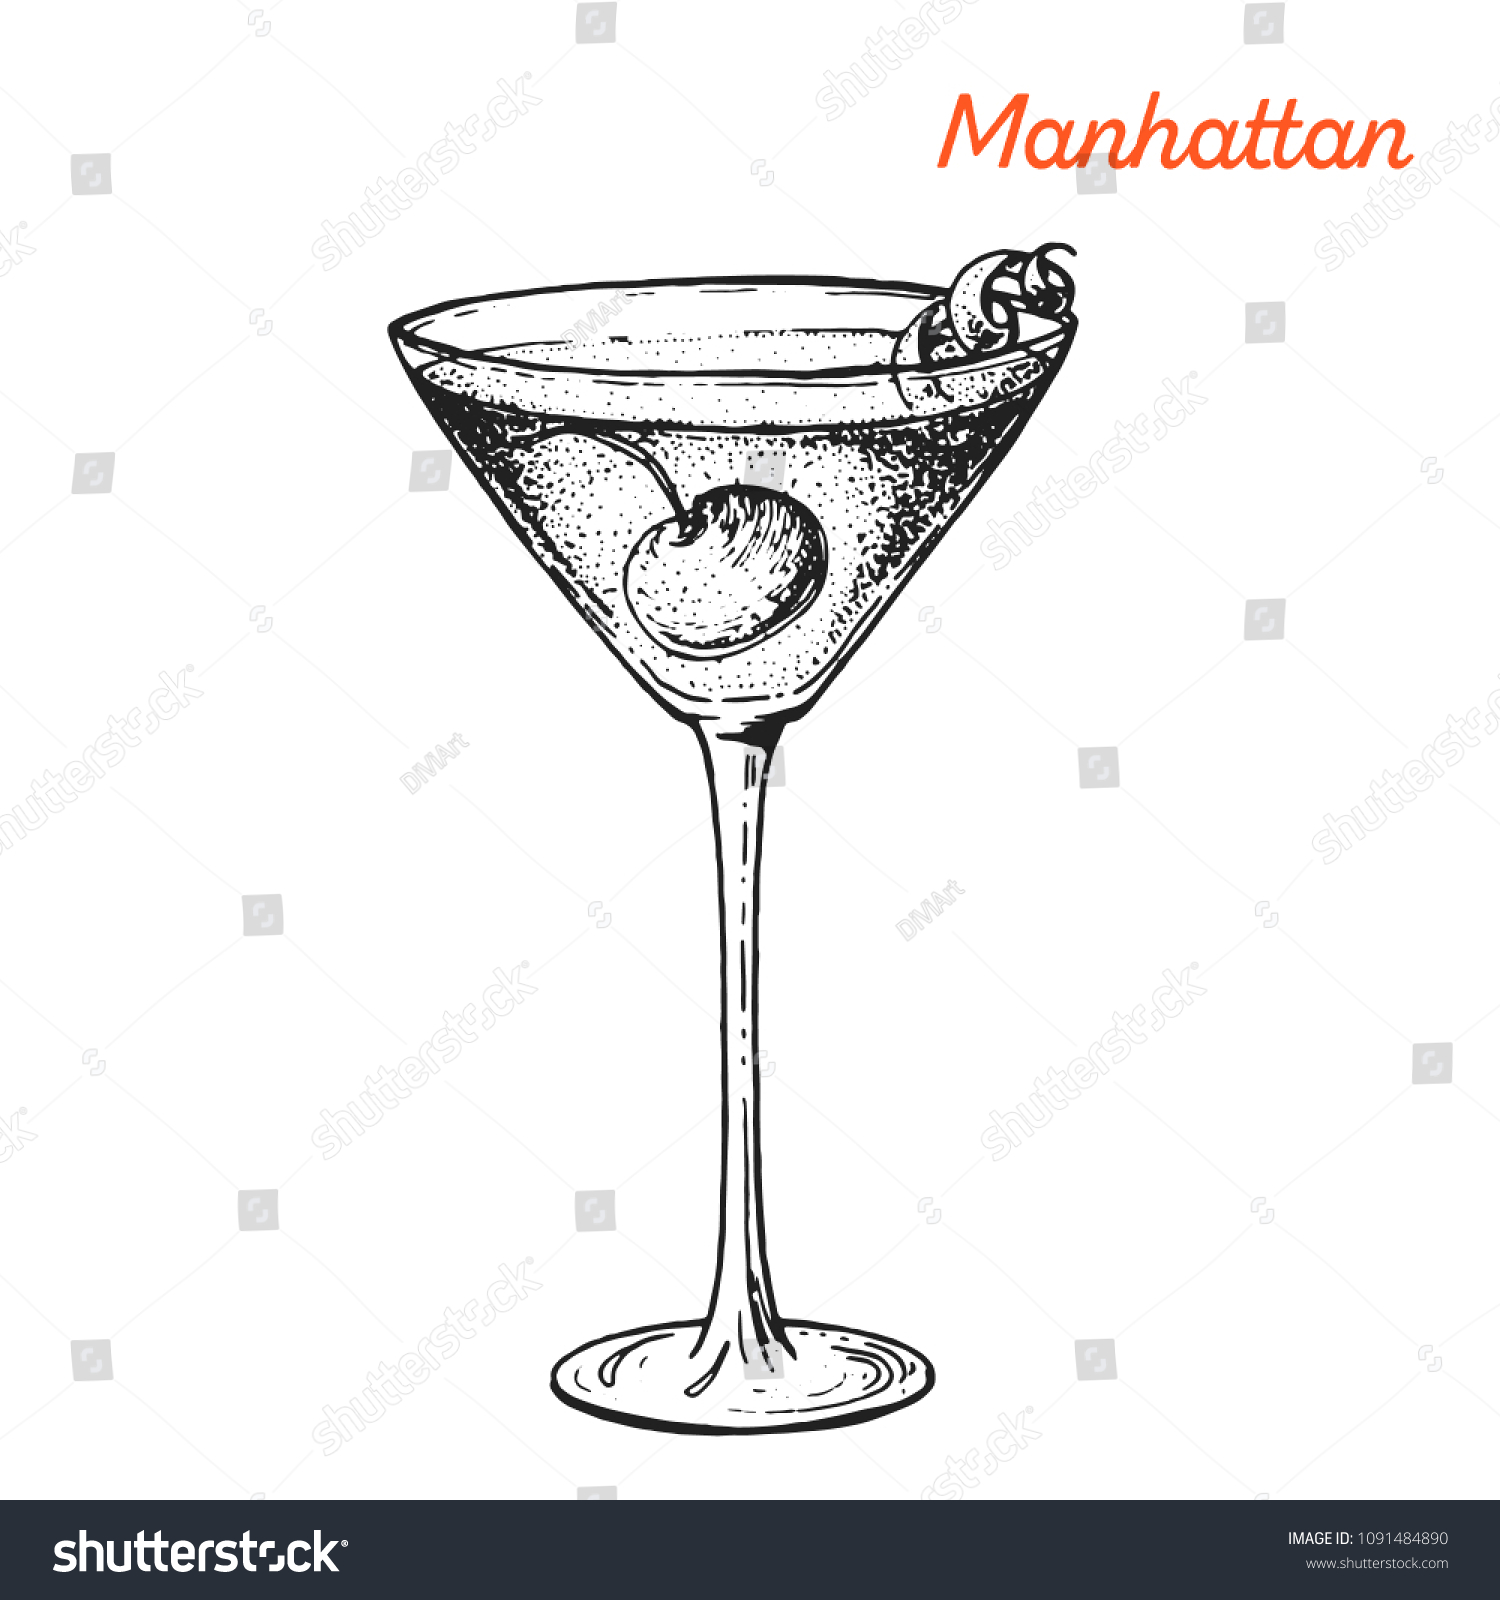 Manhattan Cocktail Illustration Alcoholic Cocktails Hand Stock Vector Royalty Free 1091484890